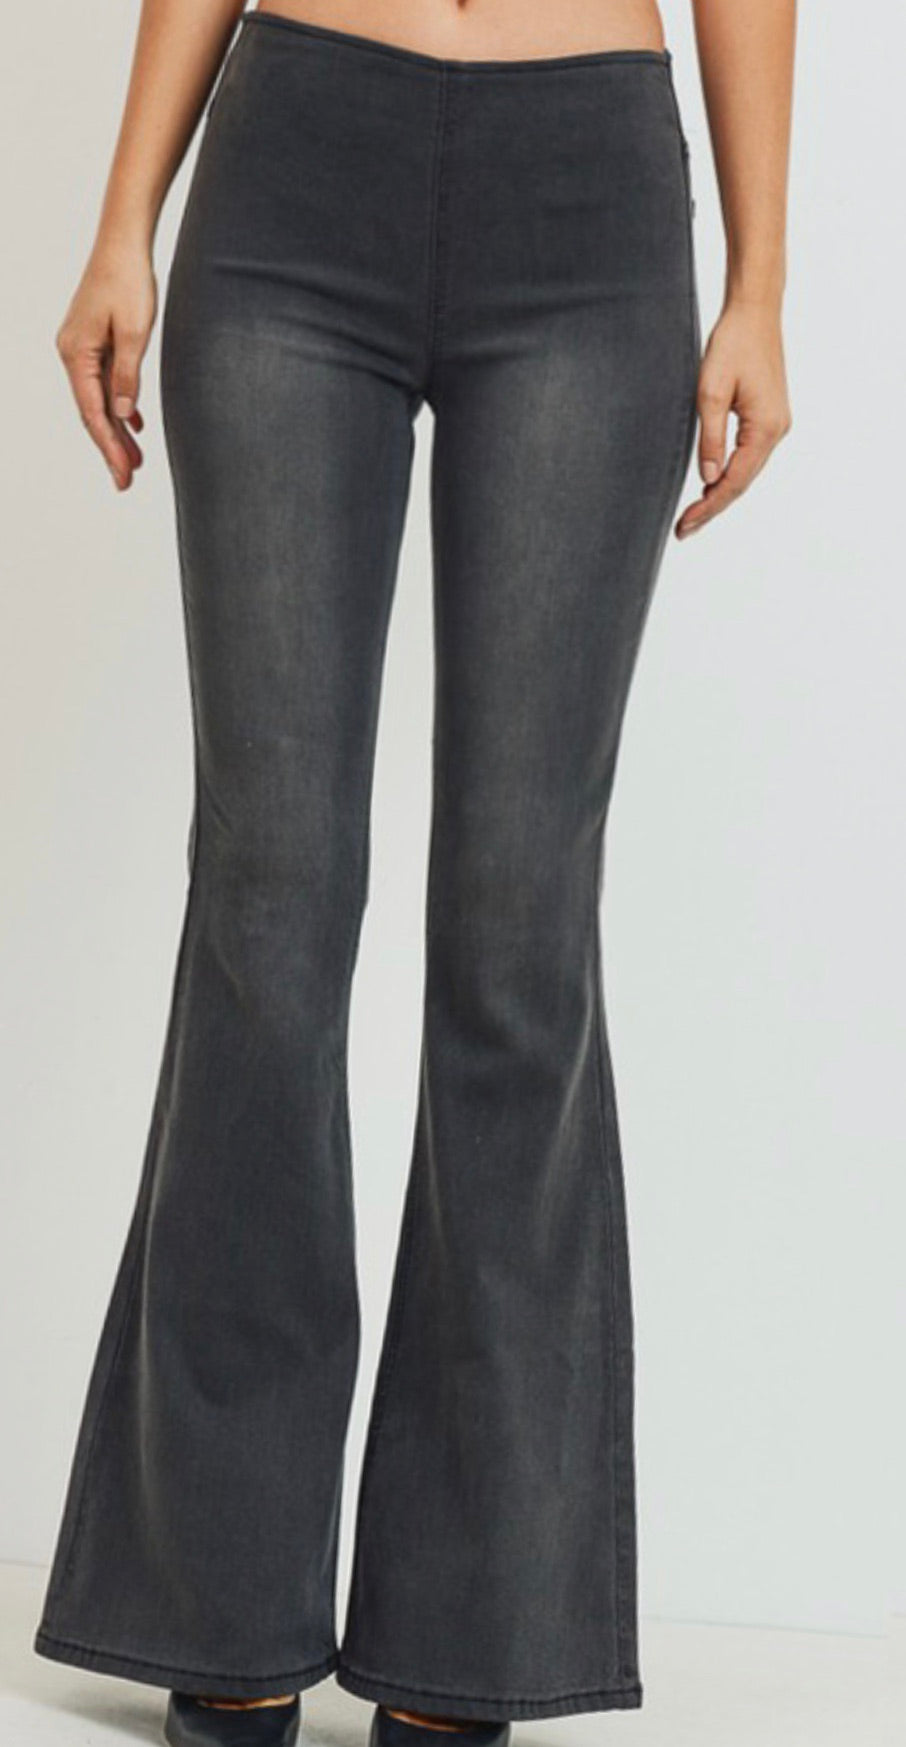 Anniston Flare Jeans